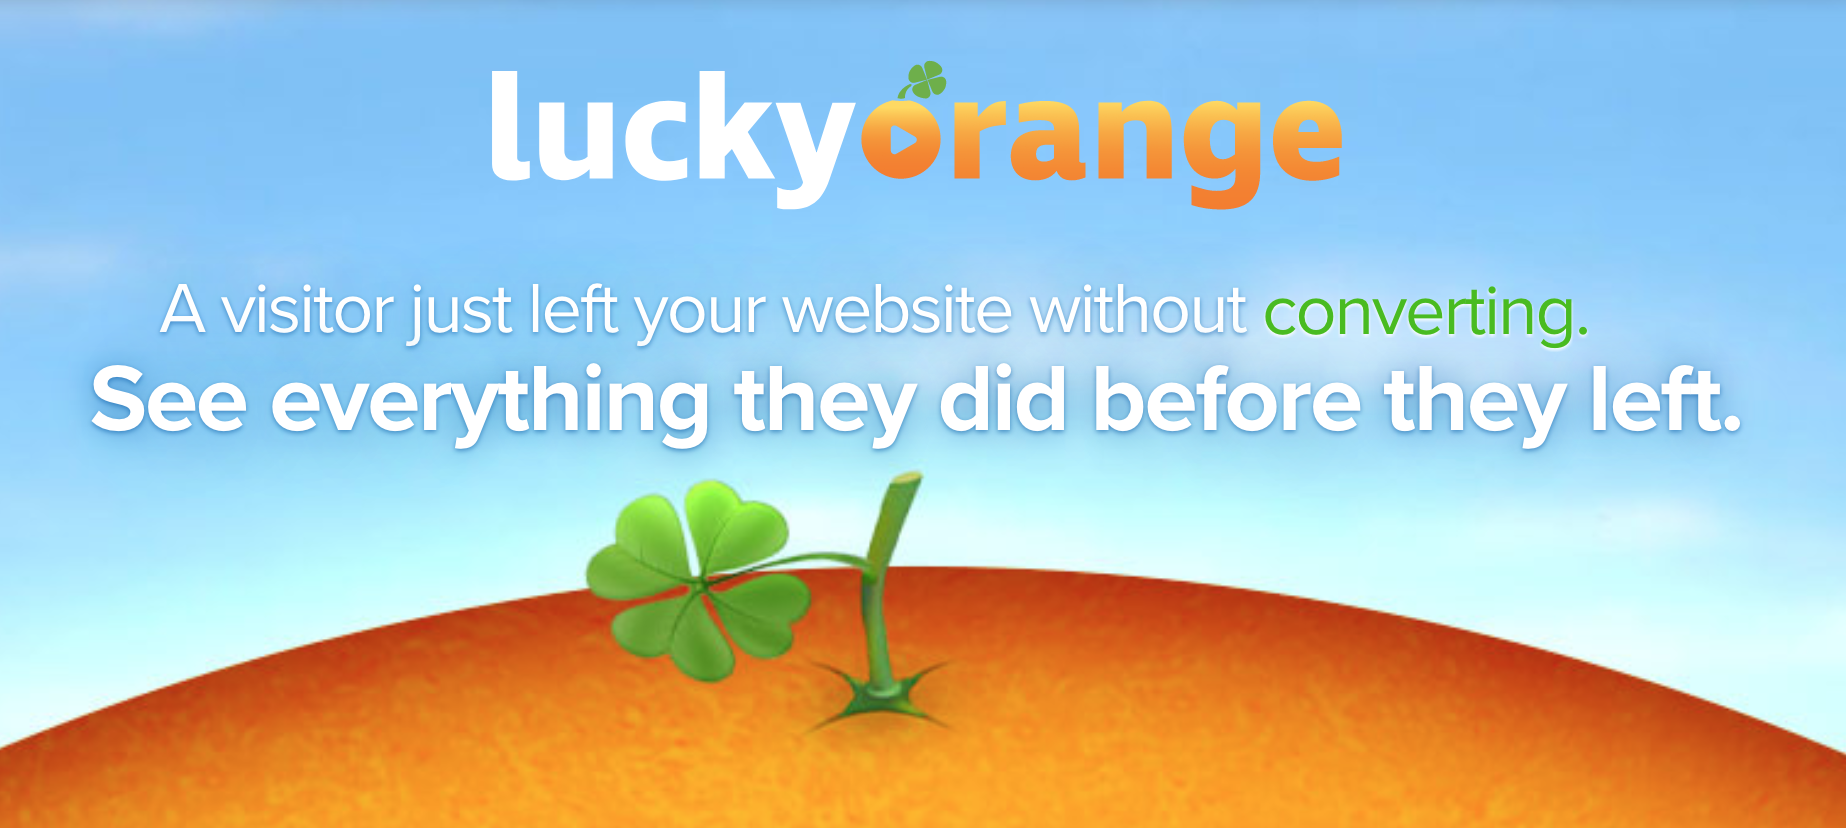 Lucky Orange for Conversion Rate Optimization